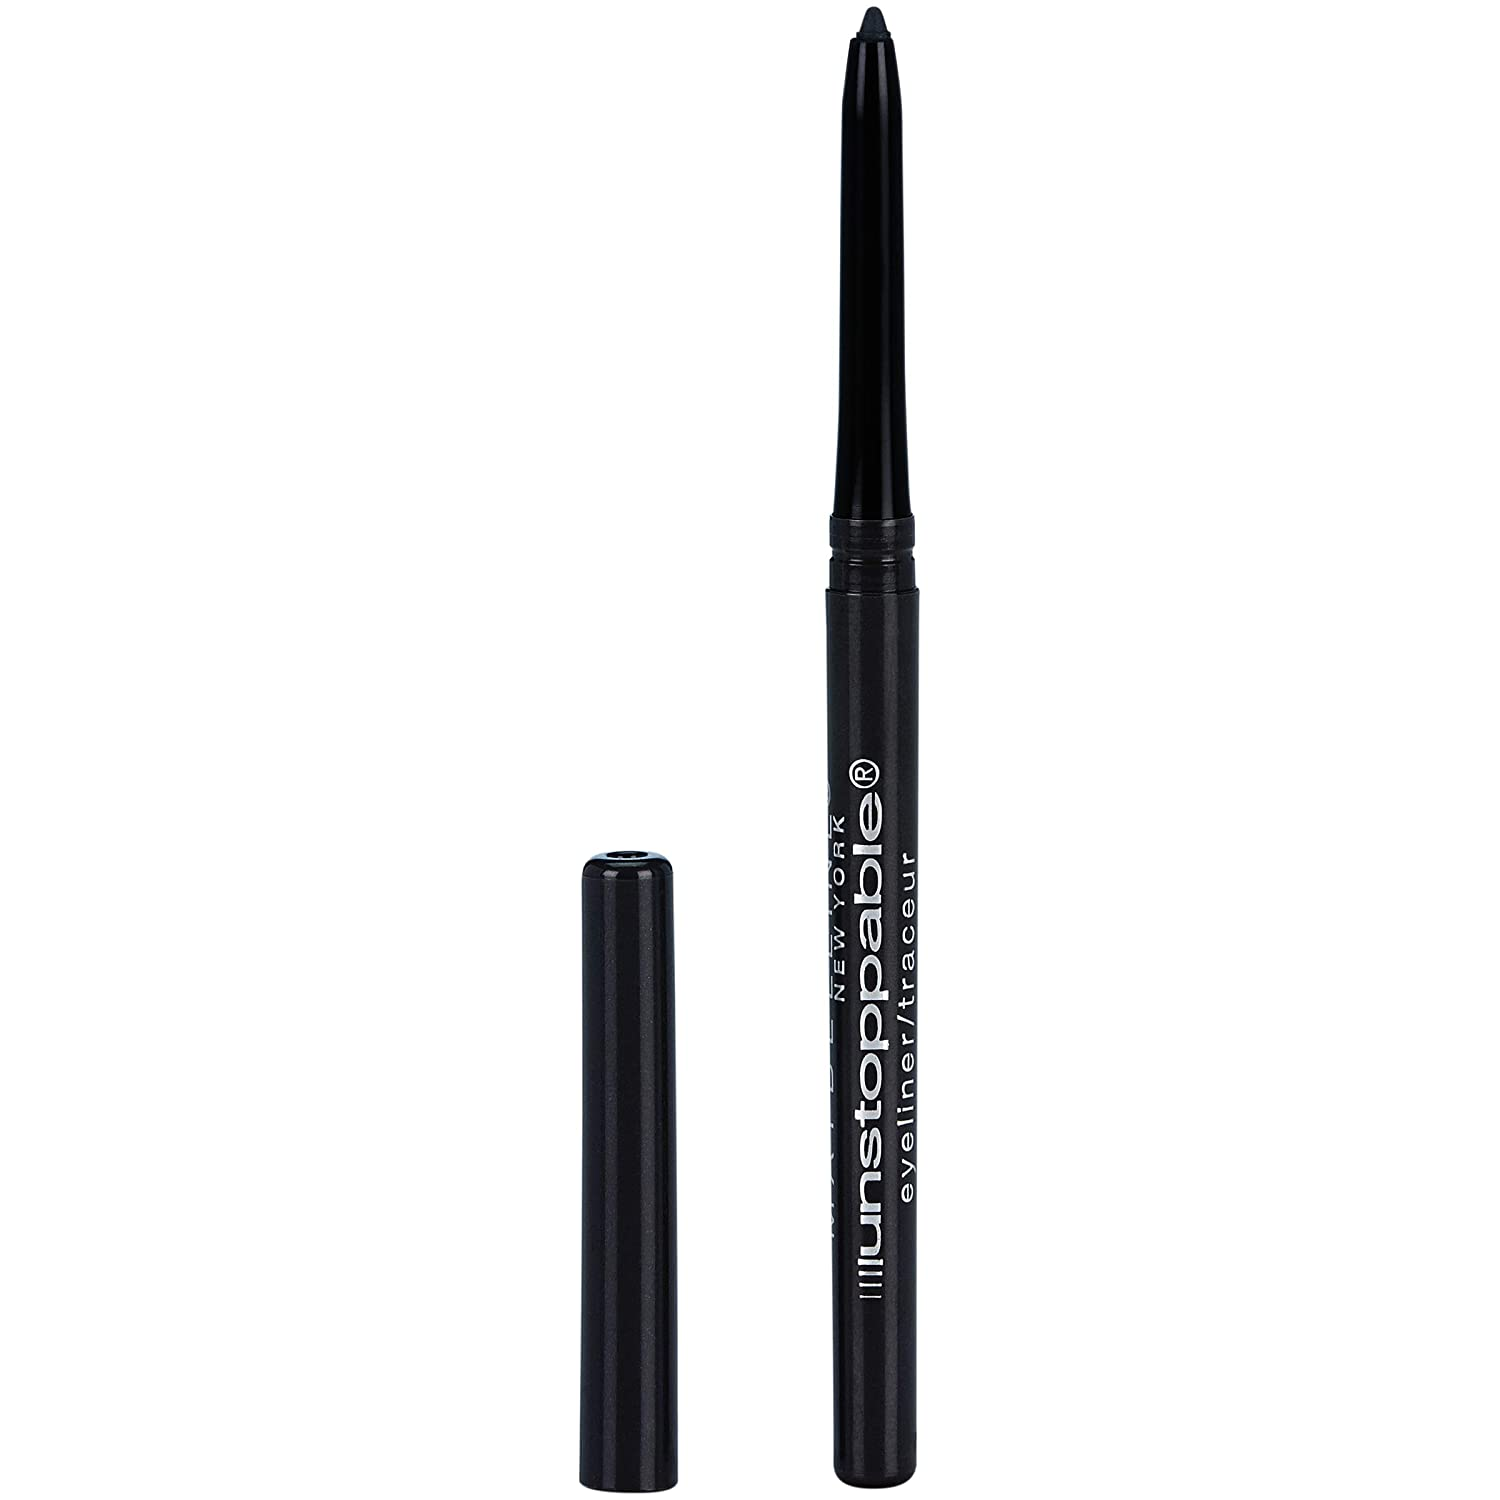 Maybelline Makeup Unstoppable Onyx Eye Liner Pencil 0.01 oz